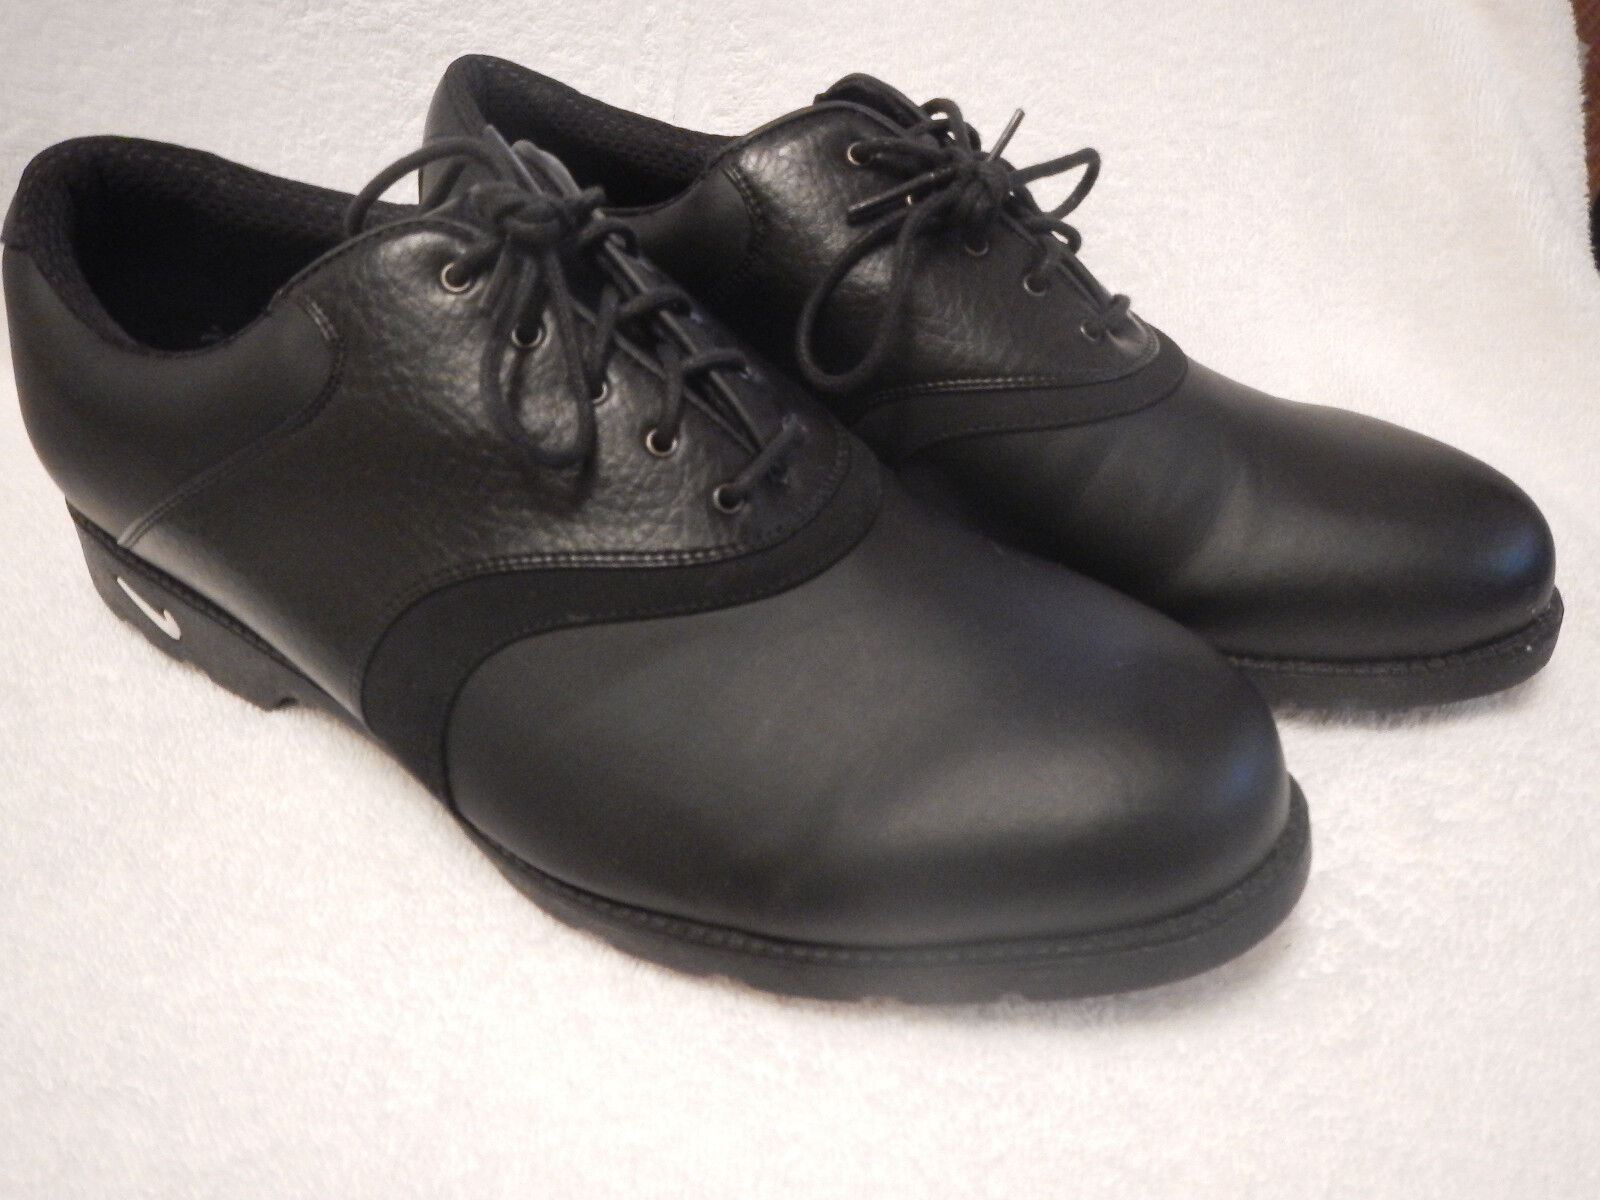 Nike Air Comfort Golf Soft Spike Black Leather Men's US 10 M Waverly Last The most popular shoes for men and women